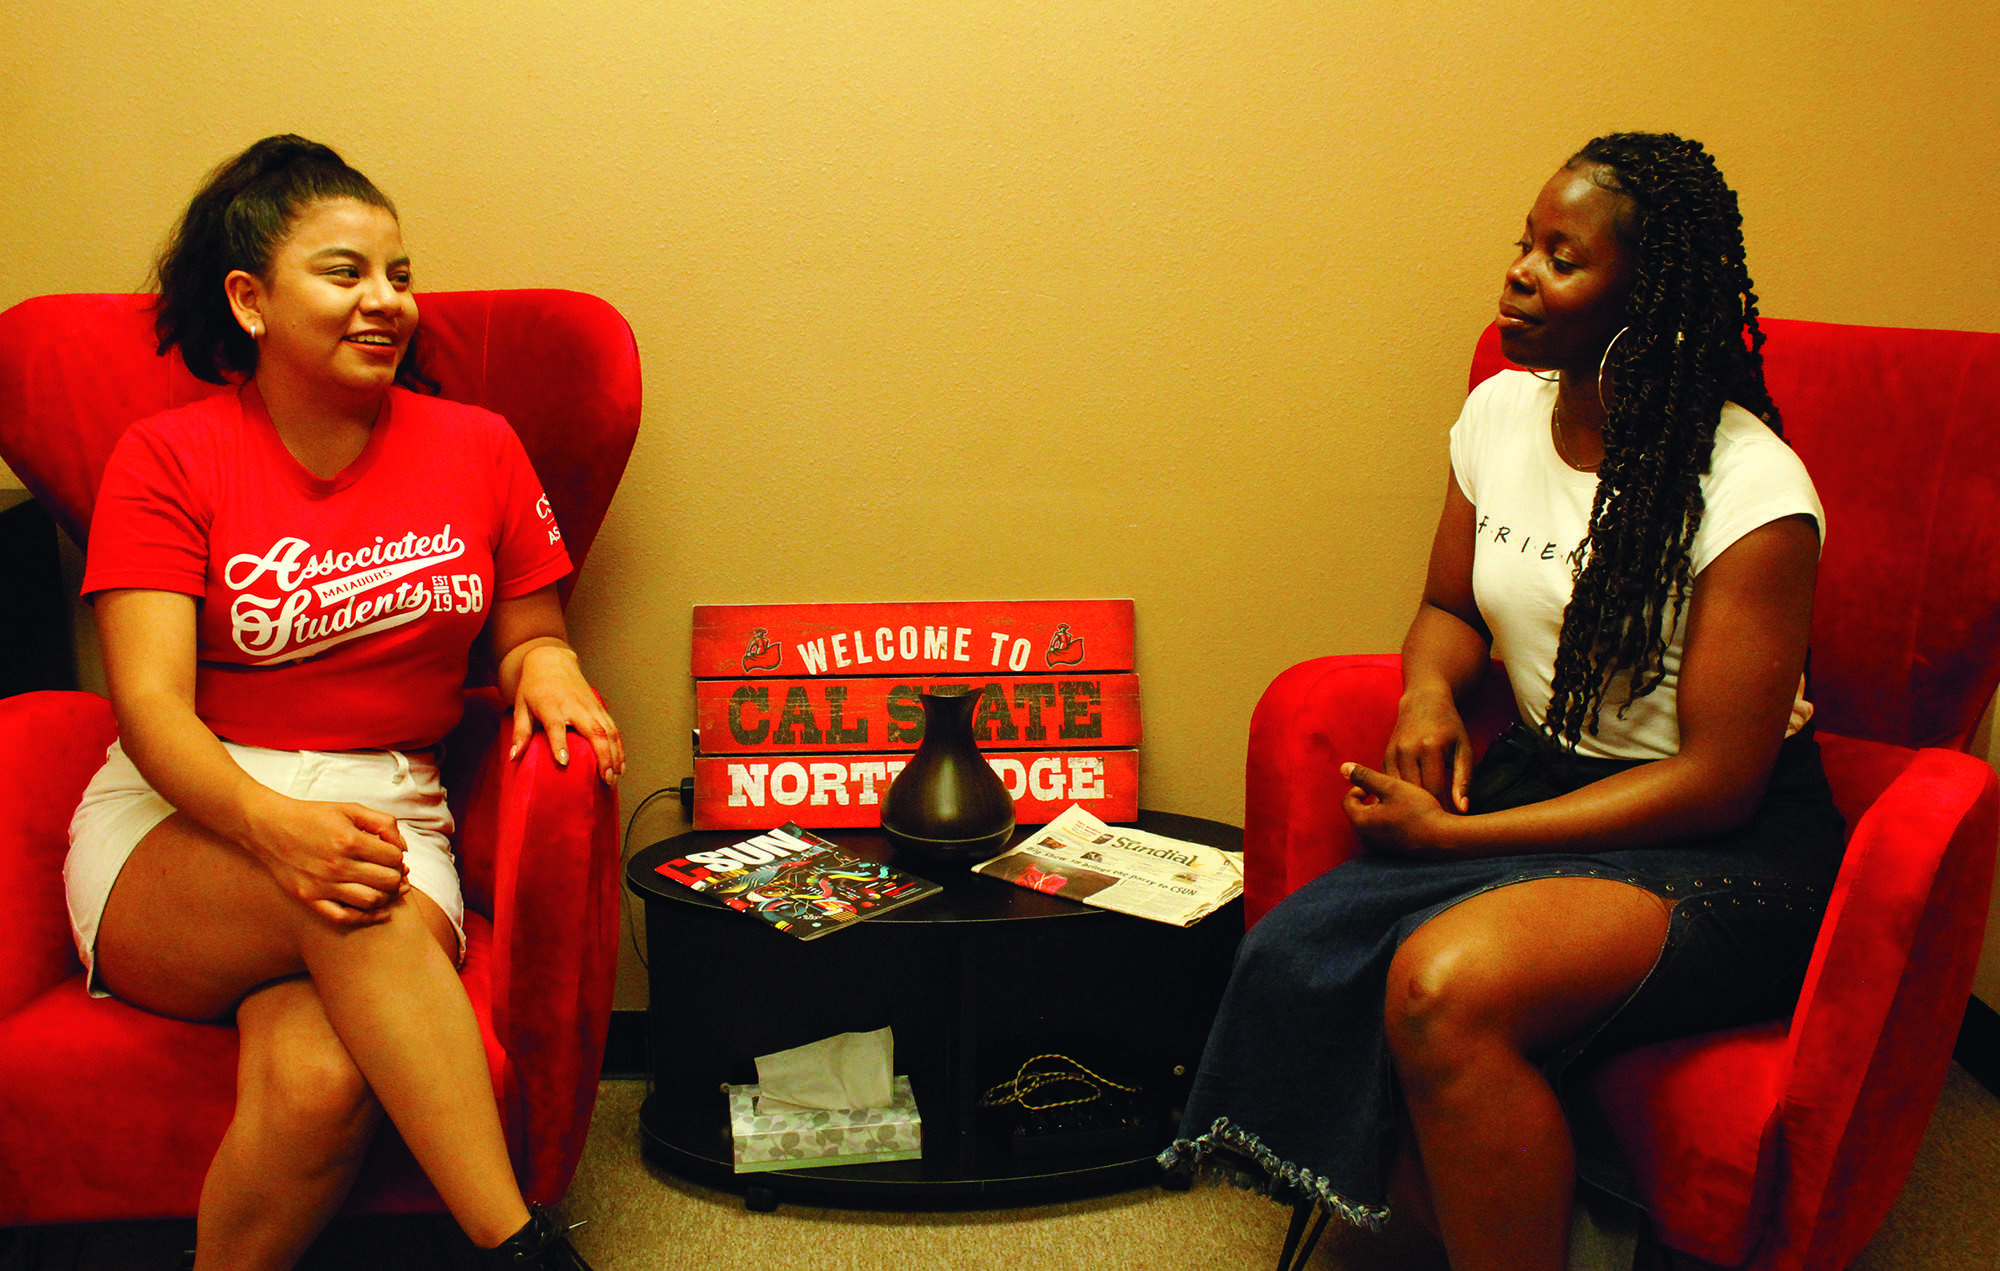 Current AS President Beverly Ntagu (right) gives advice to newly-elected AS President Diana Vicente (left) in the AS offices. Ntagu will graduate in May and Vicente will be sworn into office on June 3. Photo credit: Elijah Carr